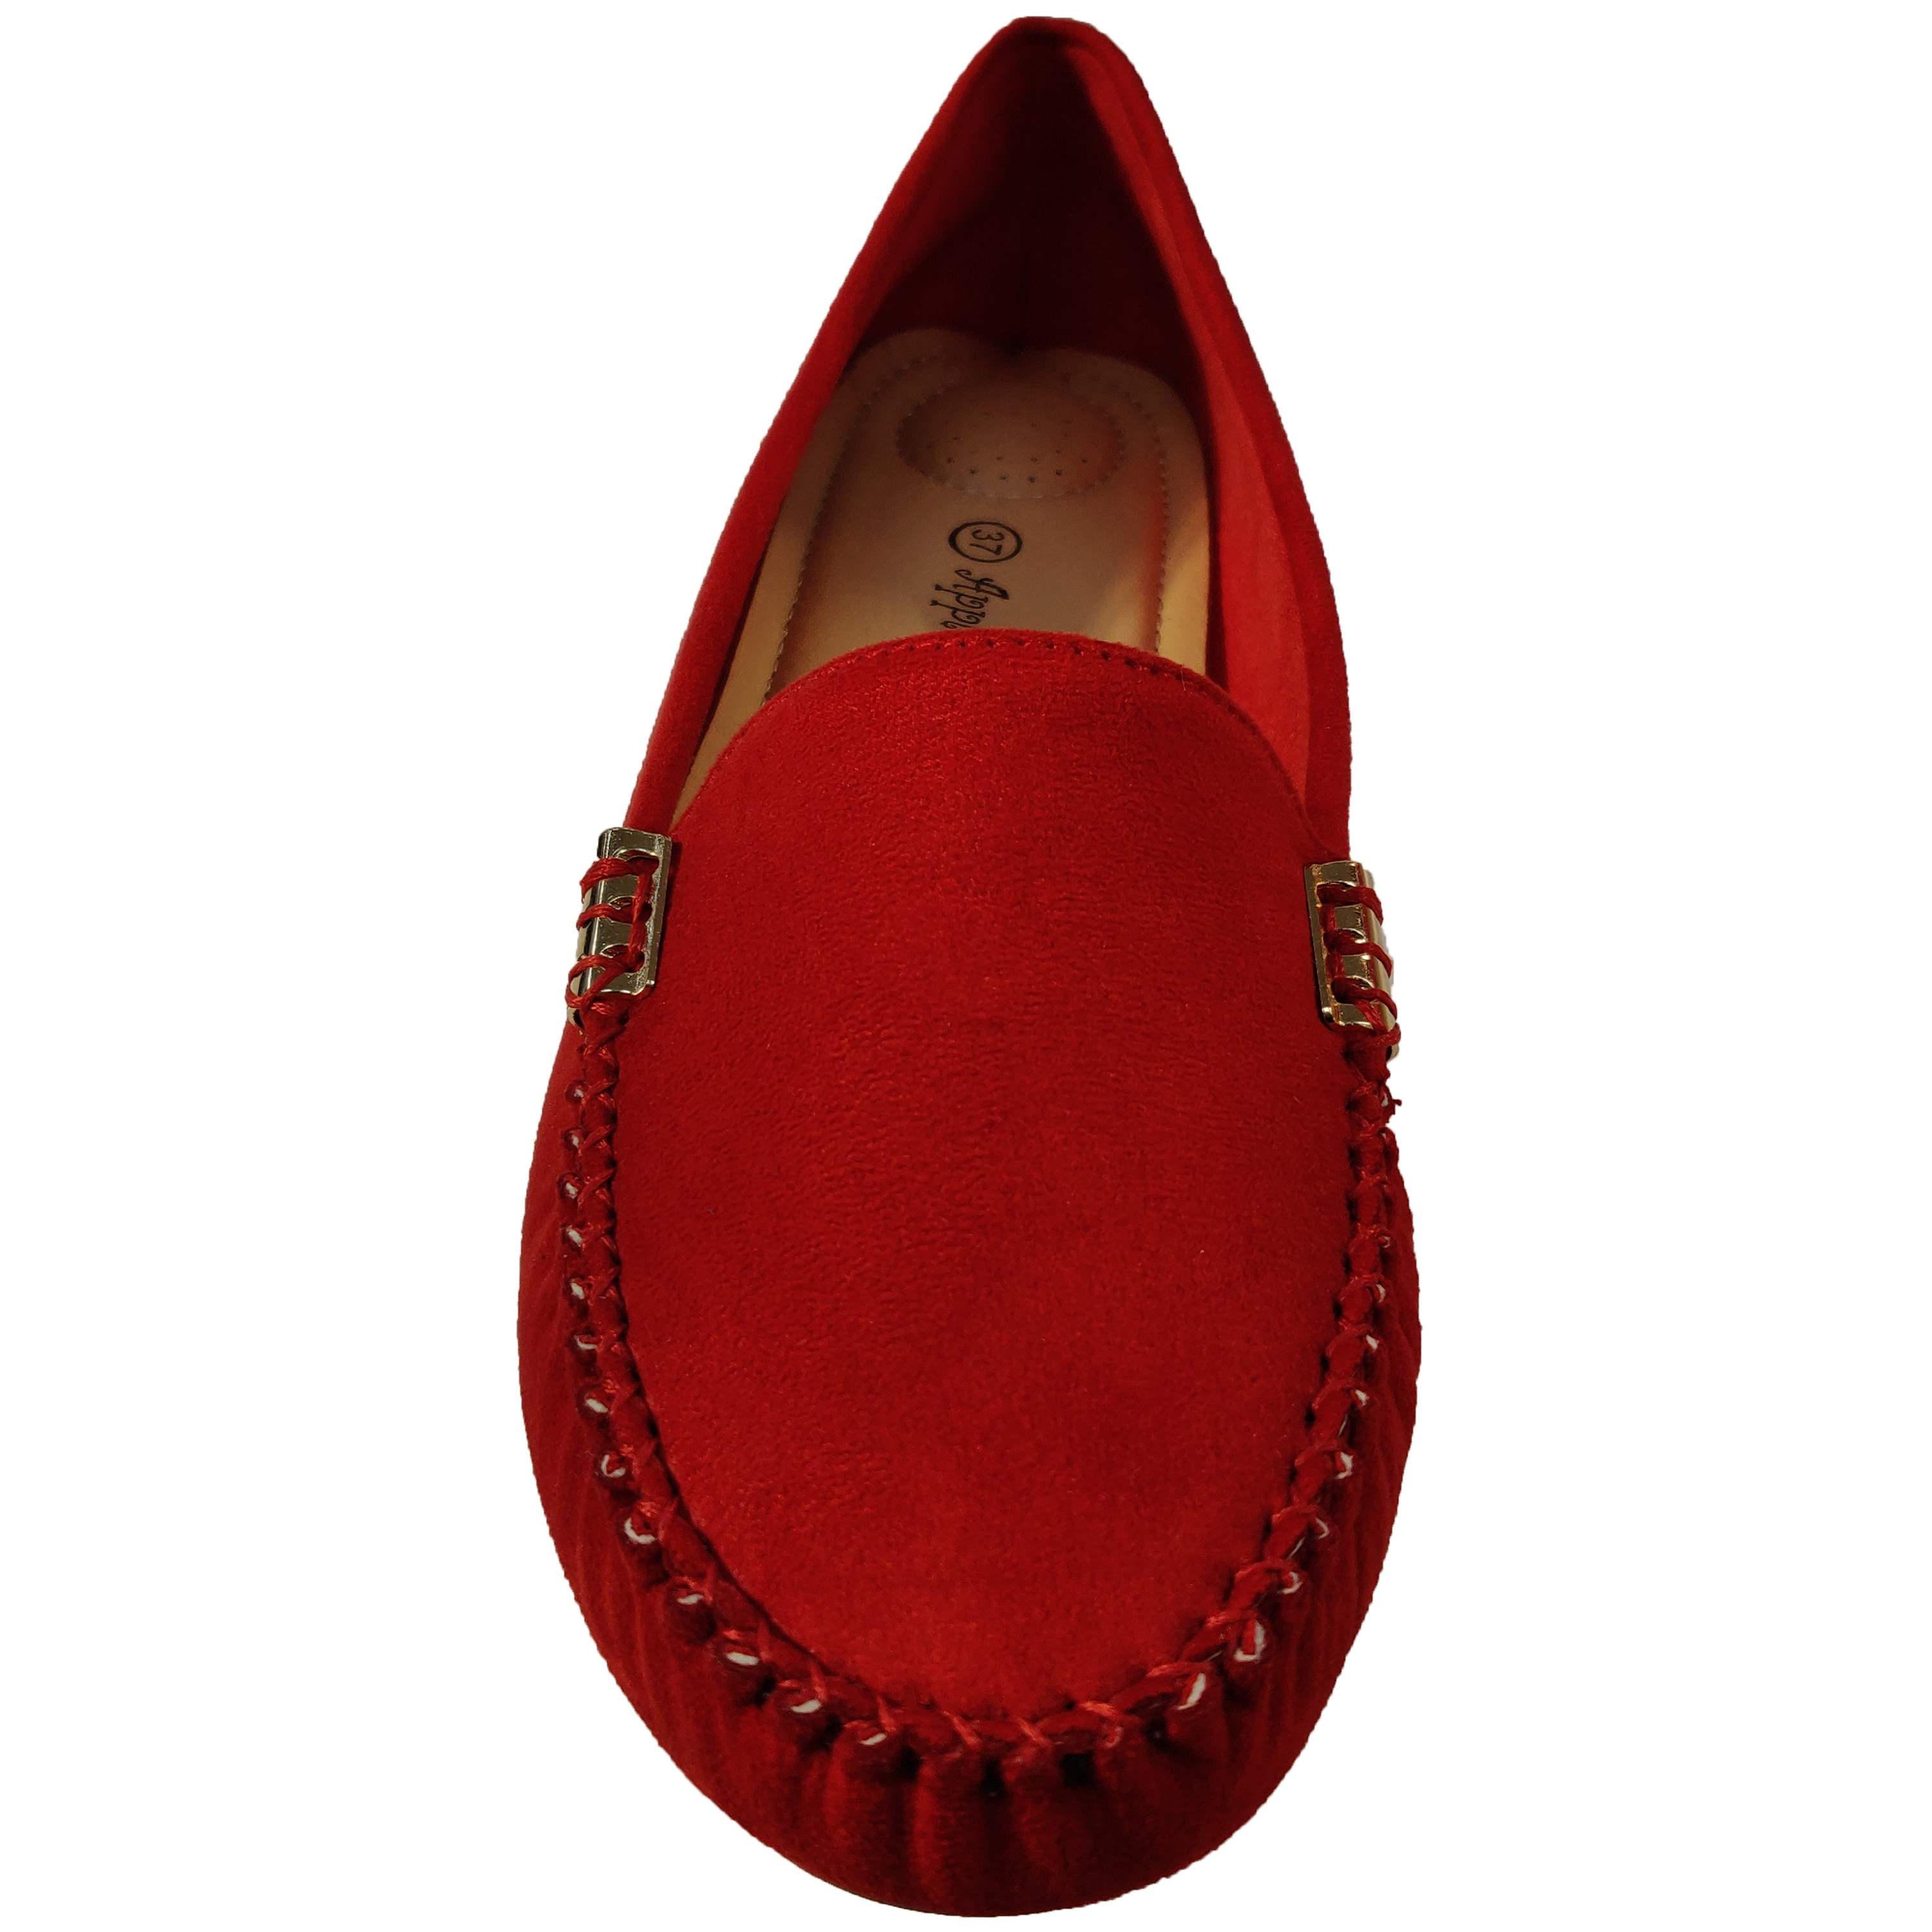 98ba43bb7a41f8 Ladies Moccasins Slip On Shoes Ballerina Womens Suede Look Loafers ...